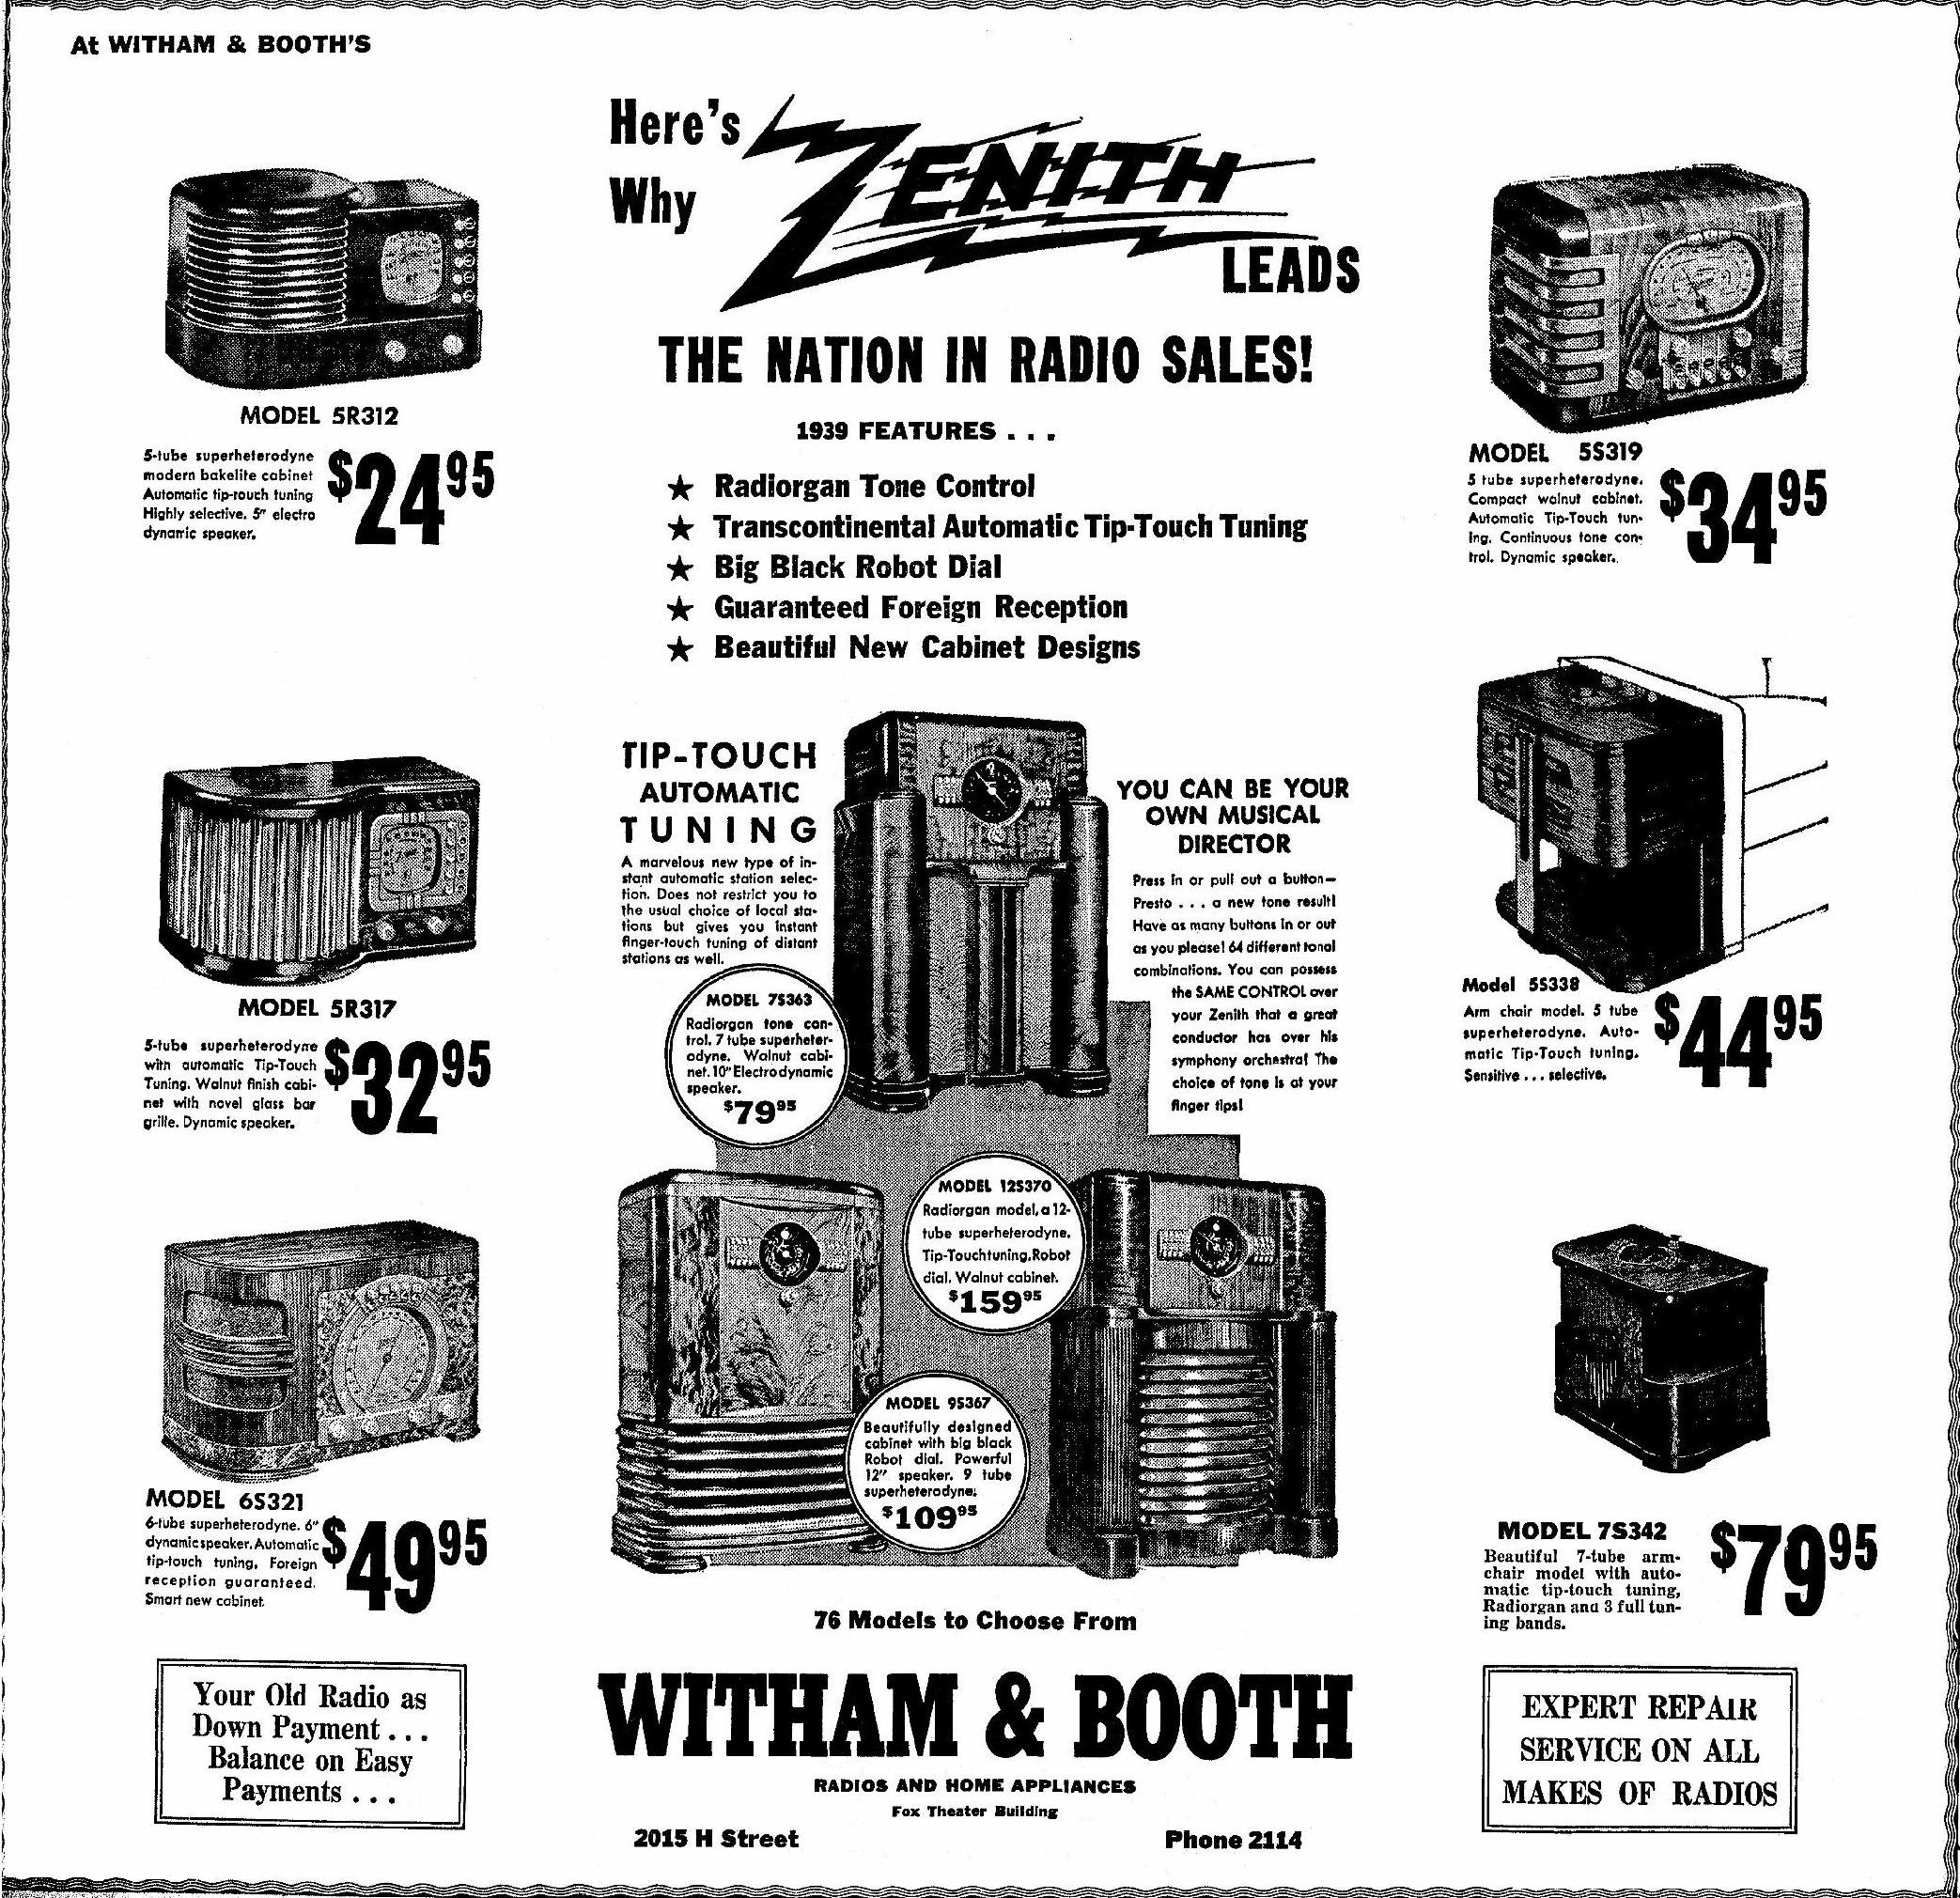 Zenith Model 5s319 Table Radio 1939. Sept 1938 Bakersfield Ca. Wiring. Zenith Tube Radio Schematics 1938 At Scoala.co